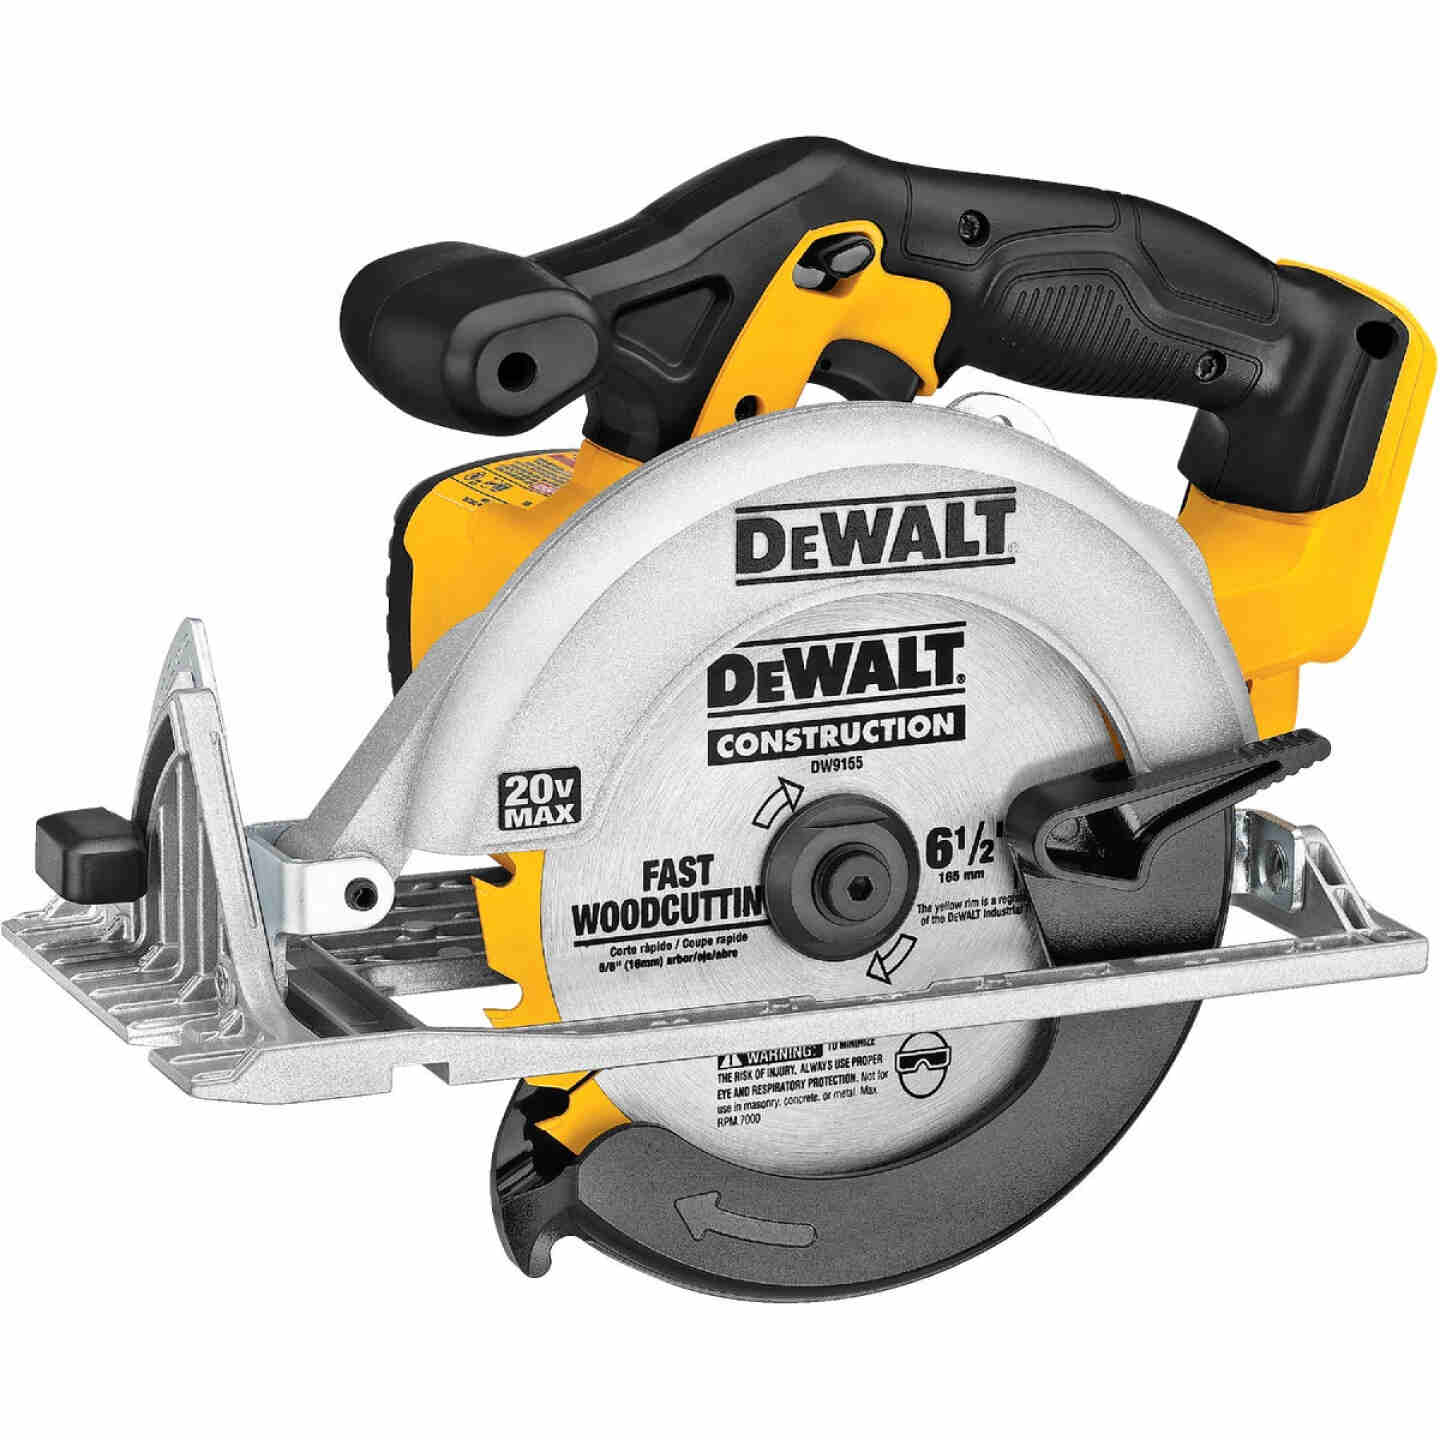 DeWalt 20 Volt MAX Lithium-Ion 6-1/2 In. Cordless Circular Saw (Bare Tool) Image 1